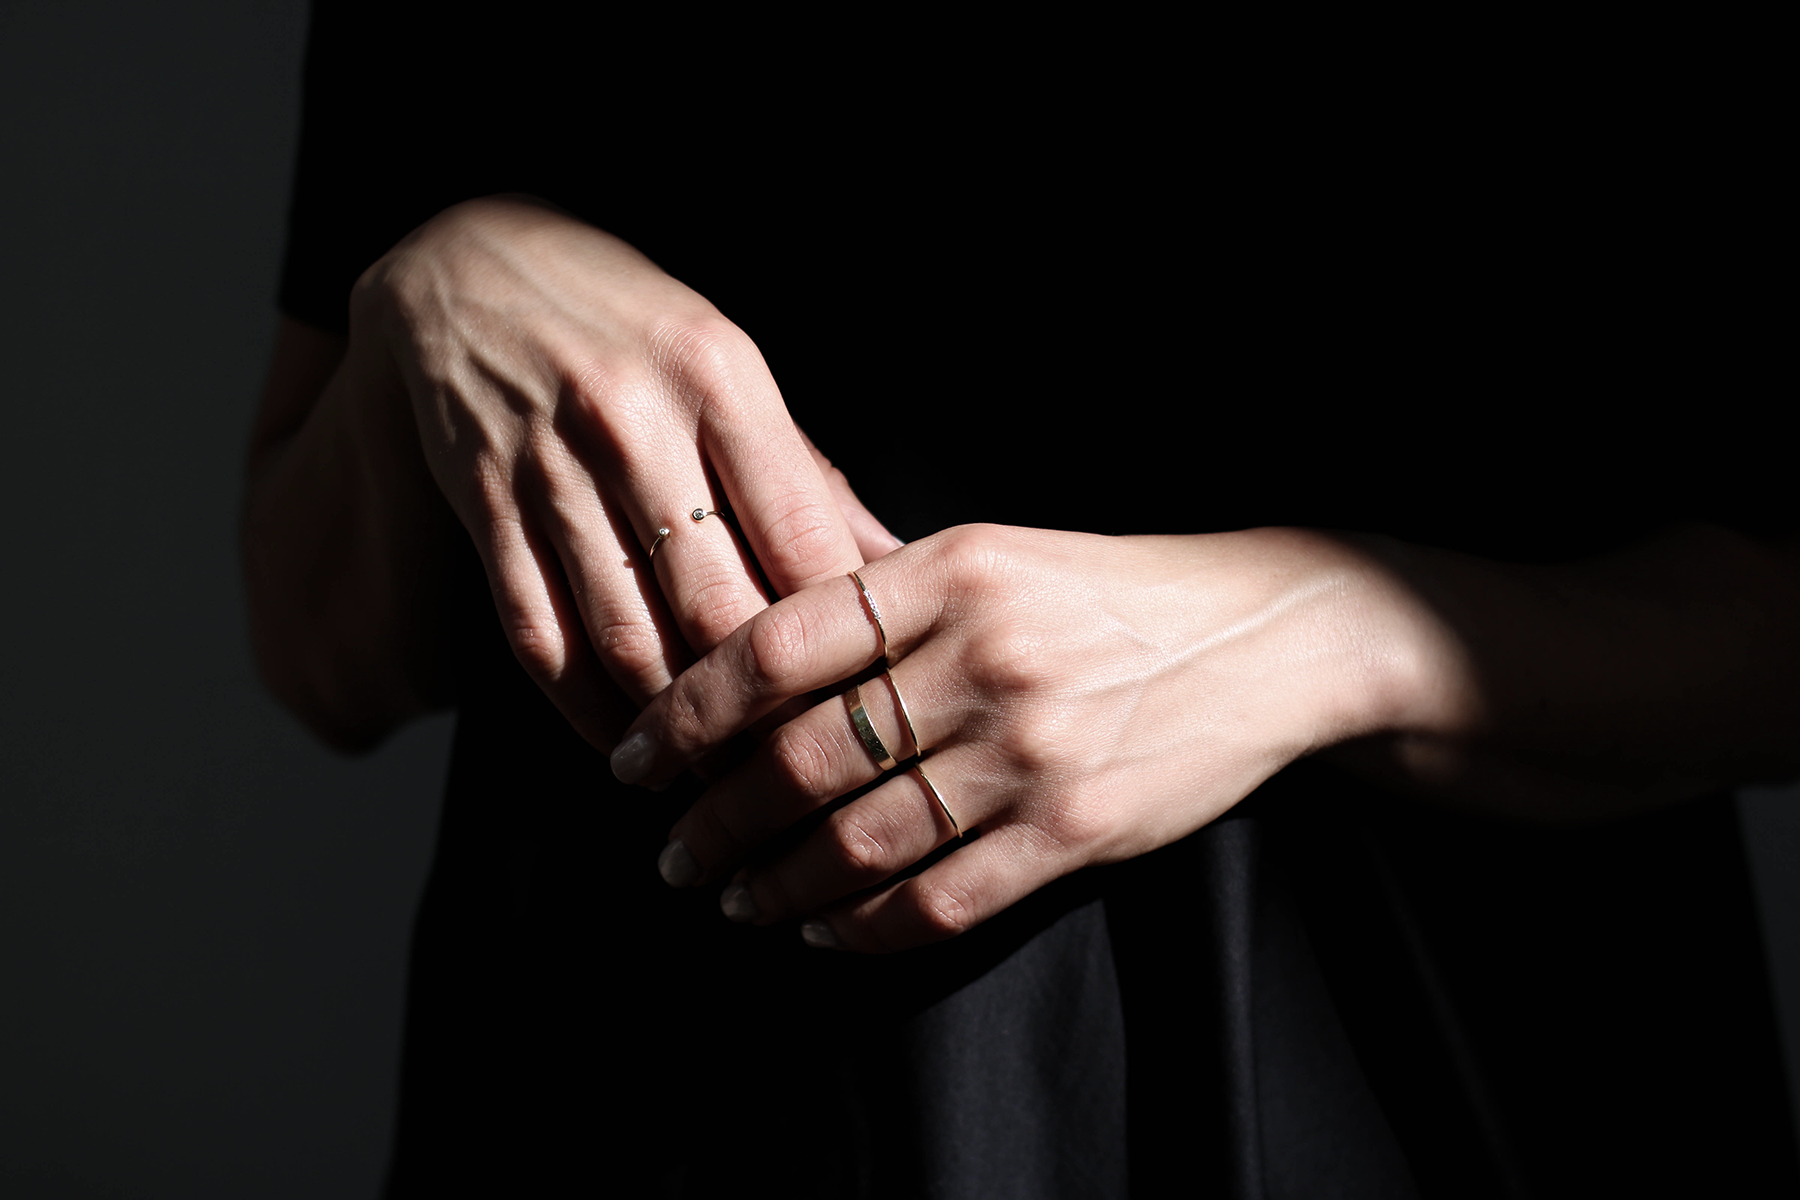 - OUVERTUREBrand Identity. Strategy. Creative Direction.OUVERTURE is a jewelry brand built on the belief that classic can be modern and luxury is for everyday. The collection consists of contemporary must-have staples at a fair price - designed to last.